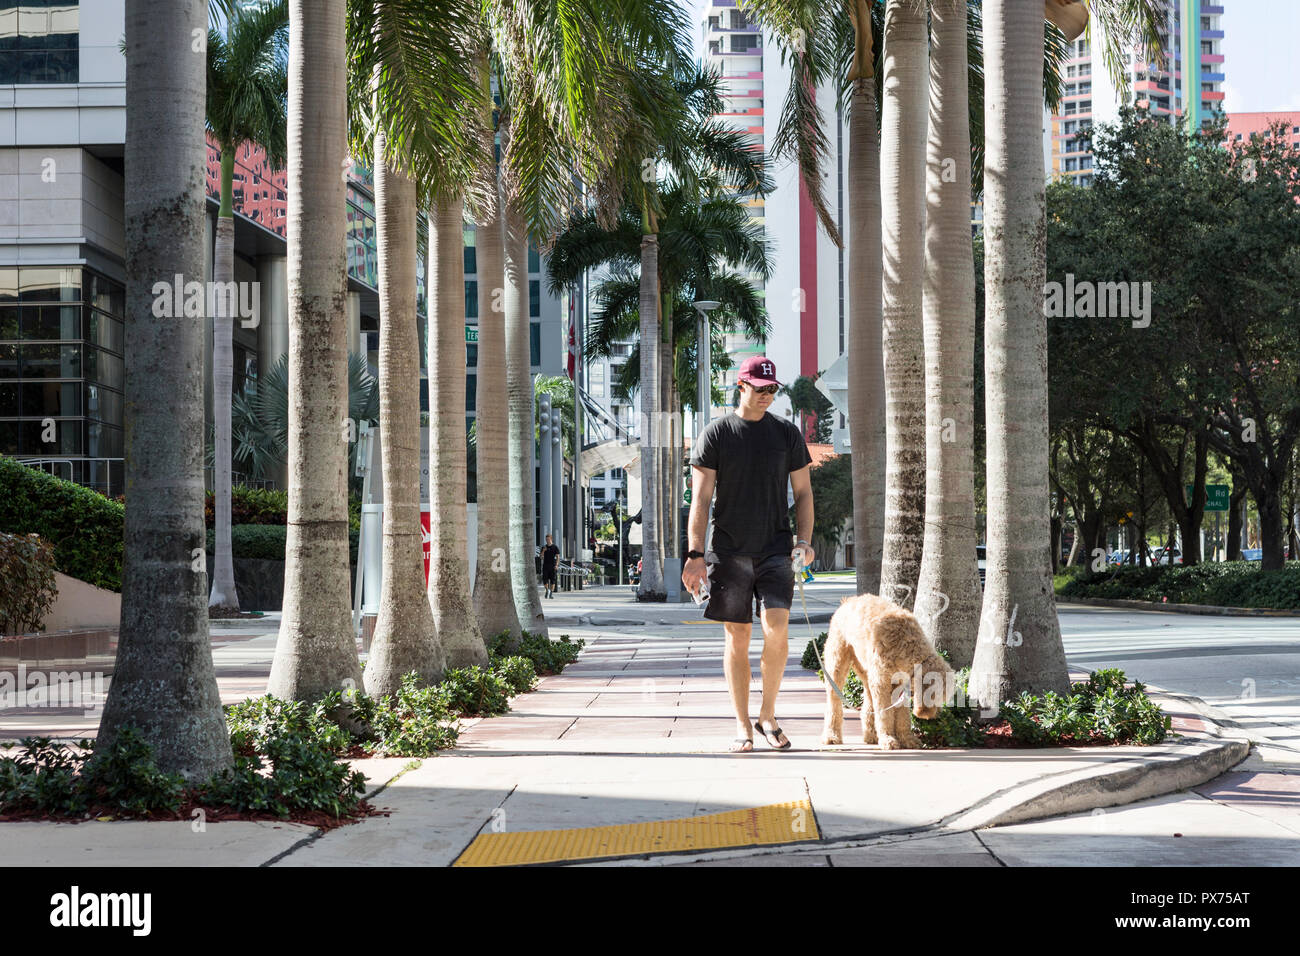 A Man Walking His Dog In Downtown Brickell Miami Florida Stock